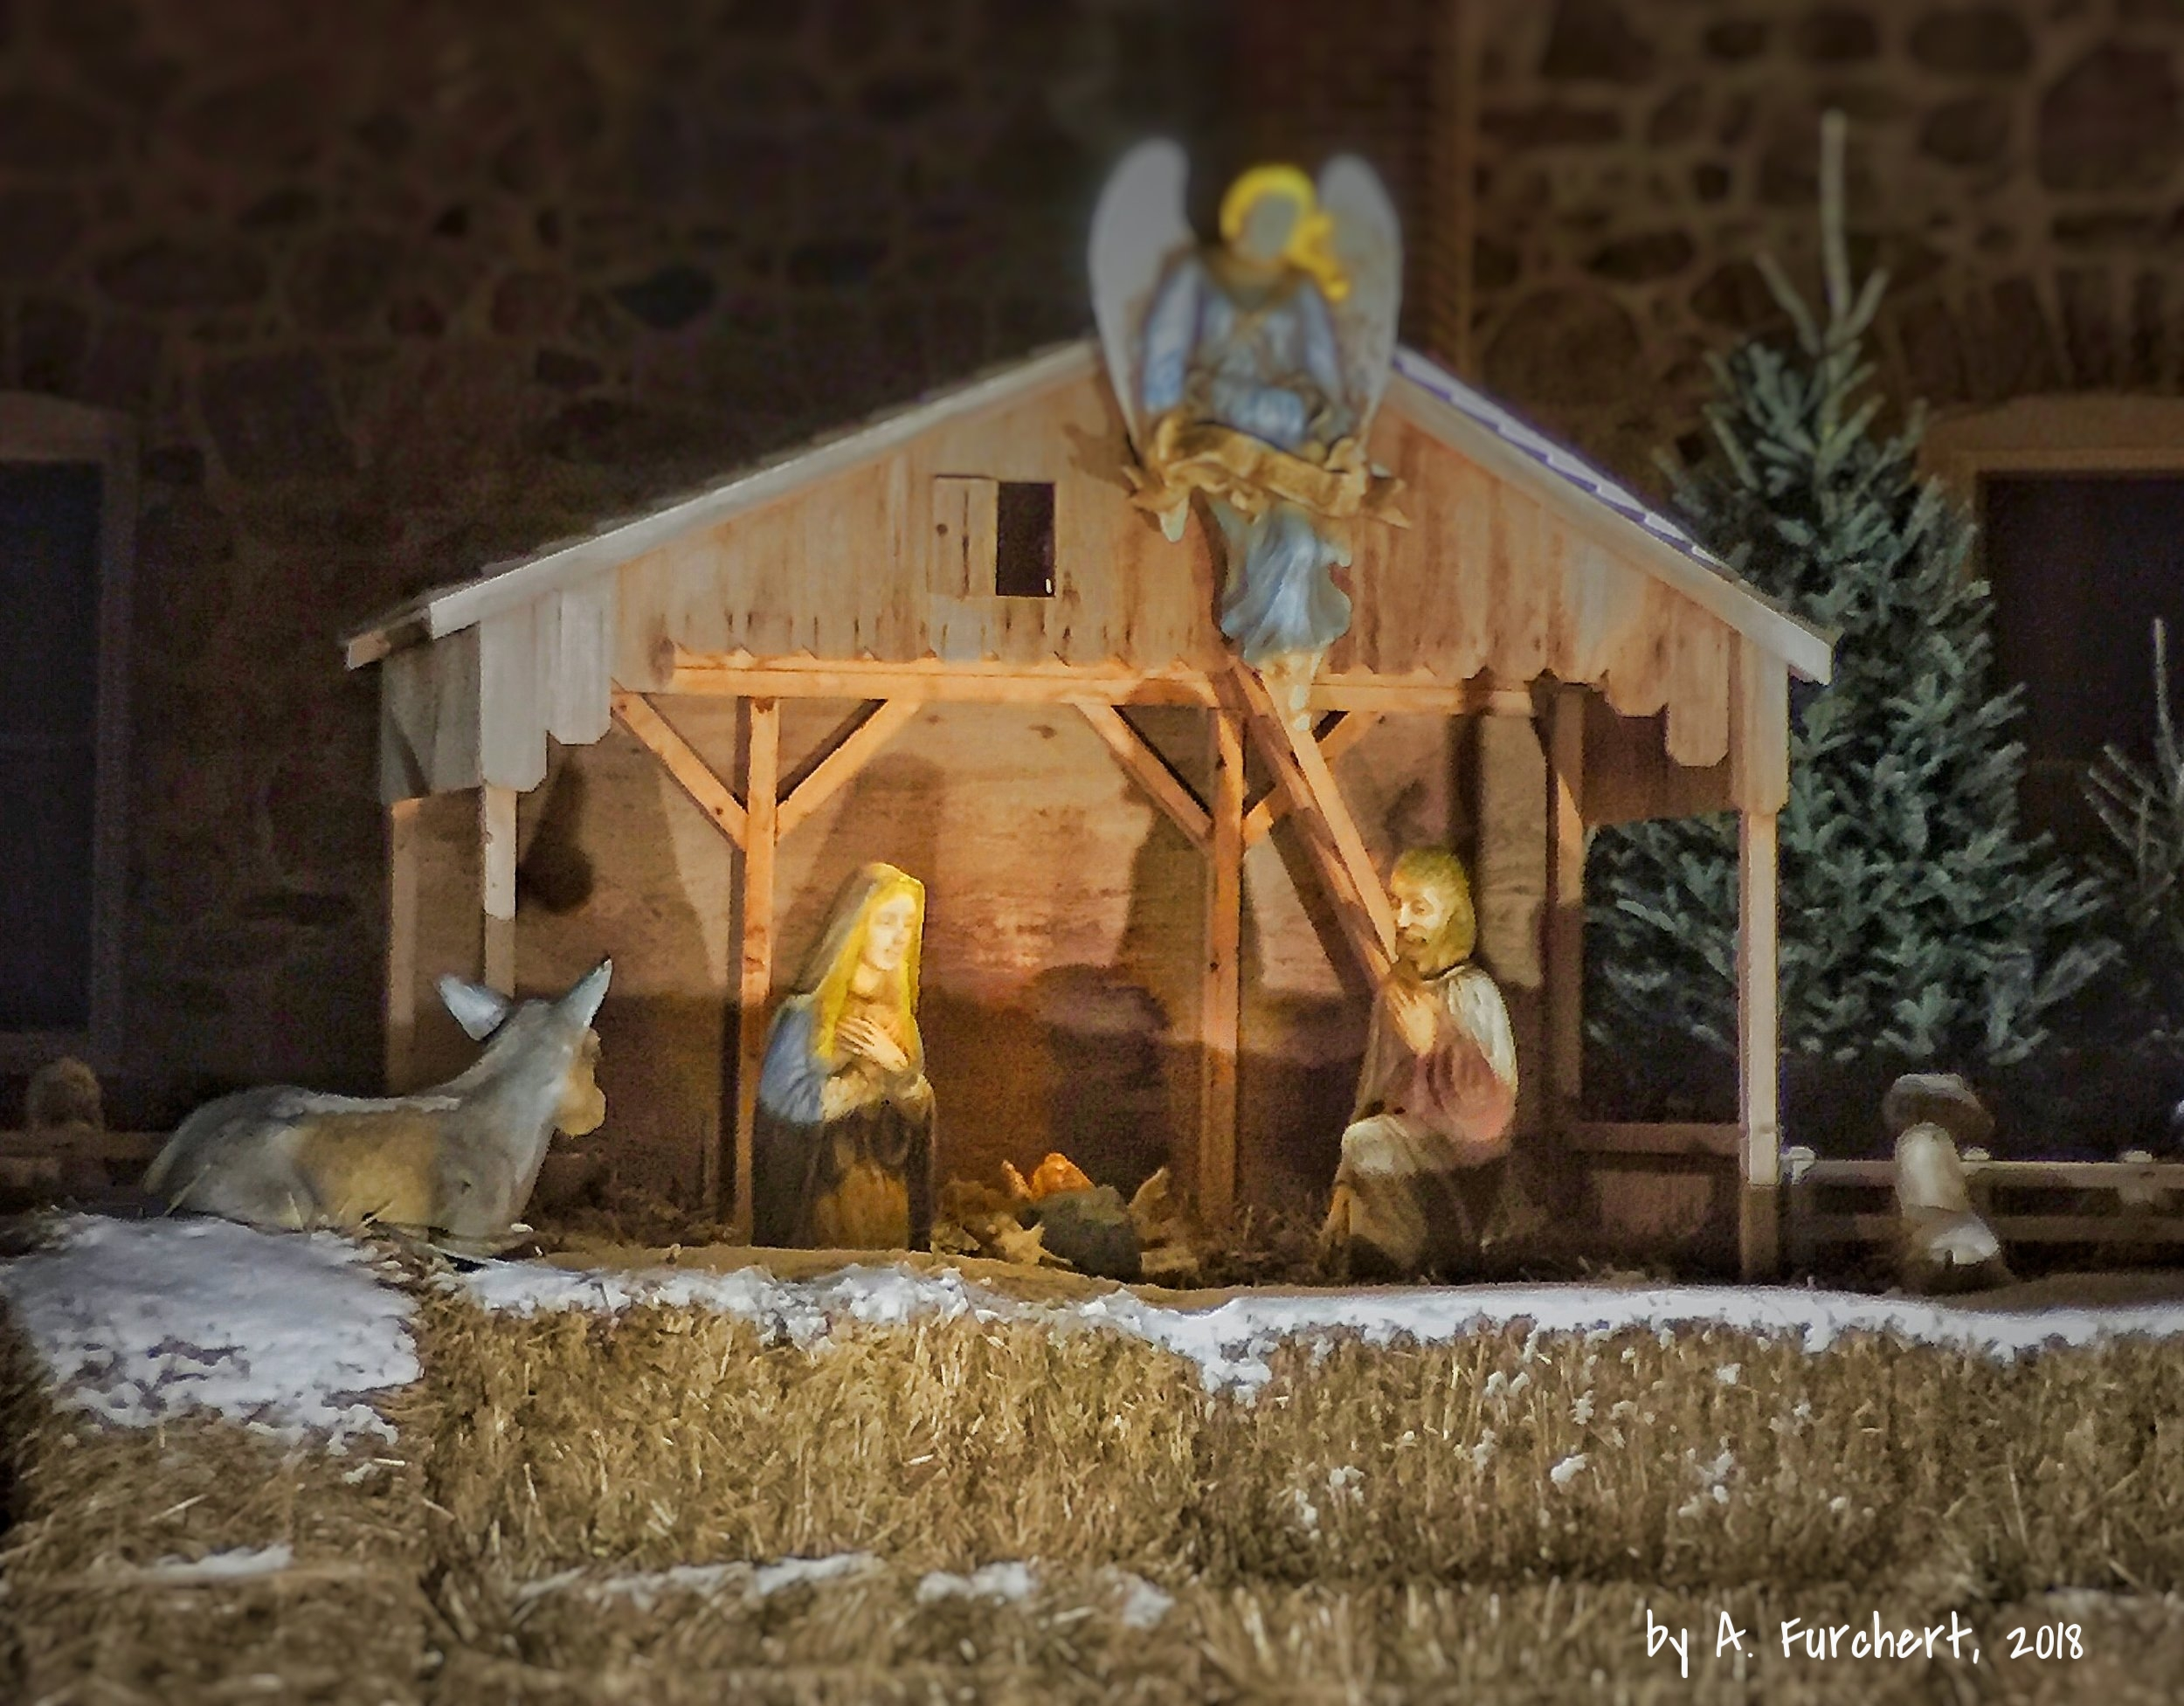 Little Jesus in an outside stable at arctic temperatures in MN. Bring him a blanket! Or even better, bring him inside. Cradle God incarnate in your heart.